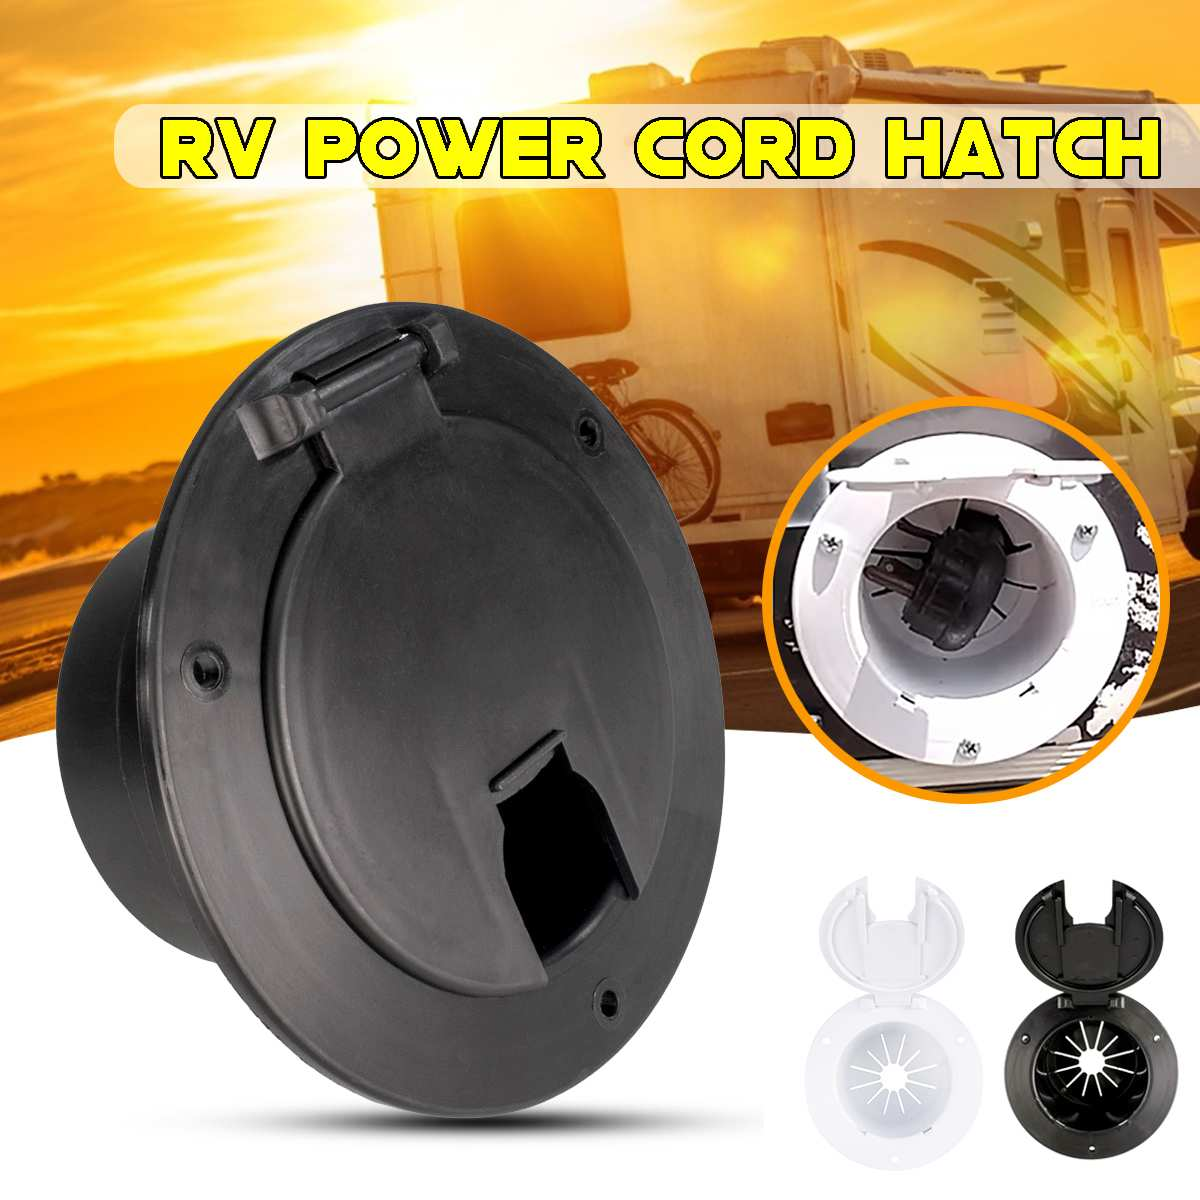 RV Electric Power Cord Round Cable Hatch Camper' Car Cover Sun Fade Protected With UV Stabilizer PP Plastic Material Accessories